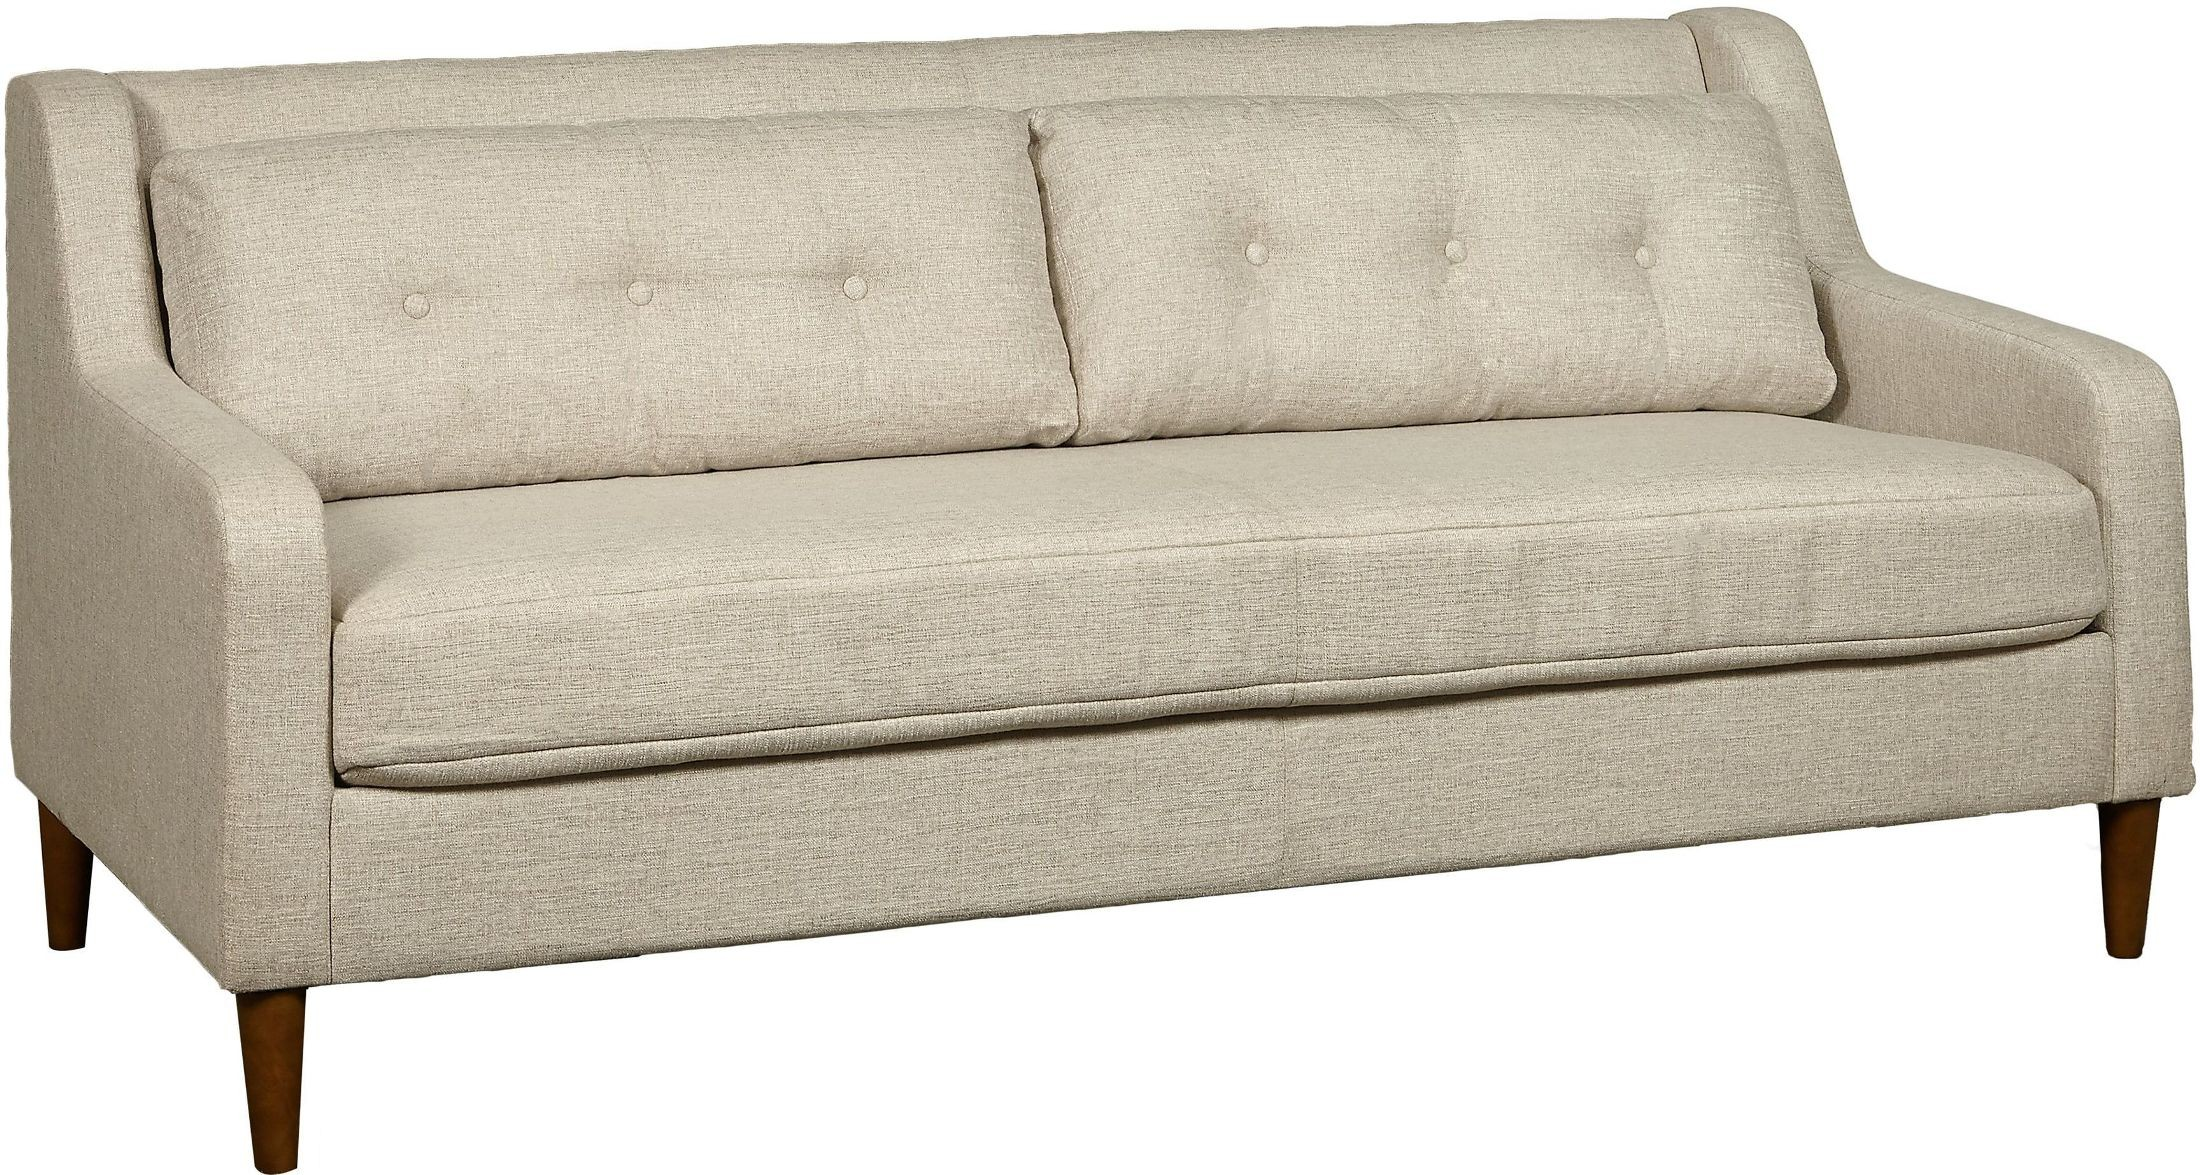 White linen sofa from pulaski coleman furniture for White linen sectional sofa